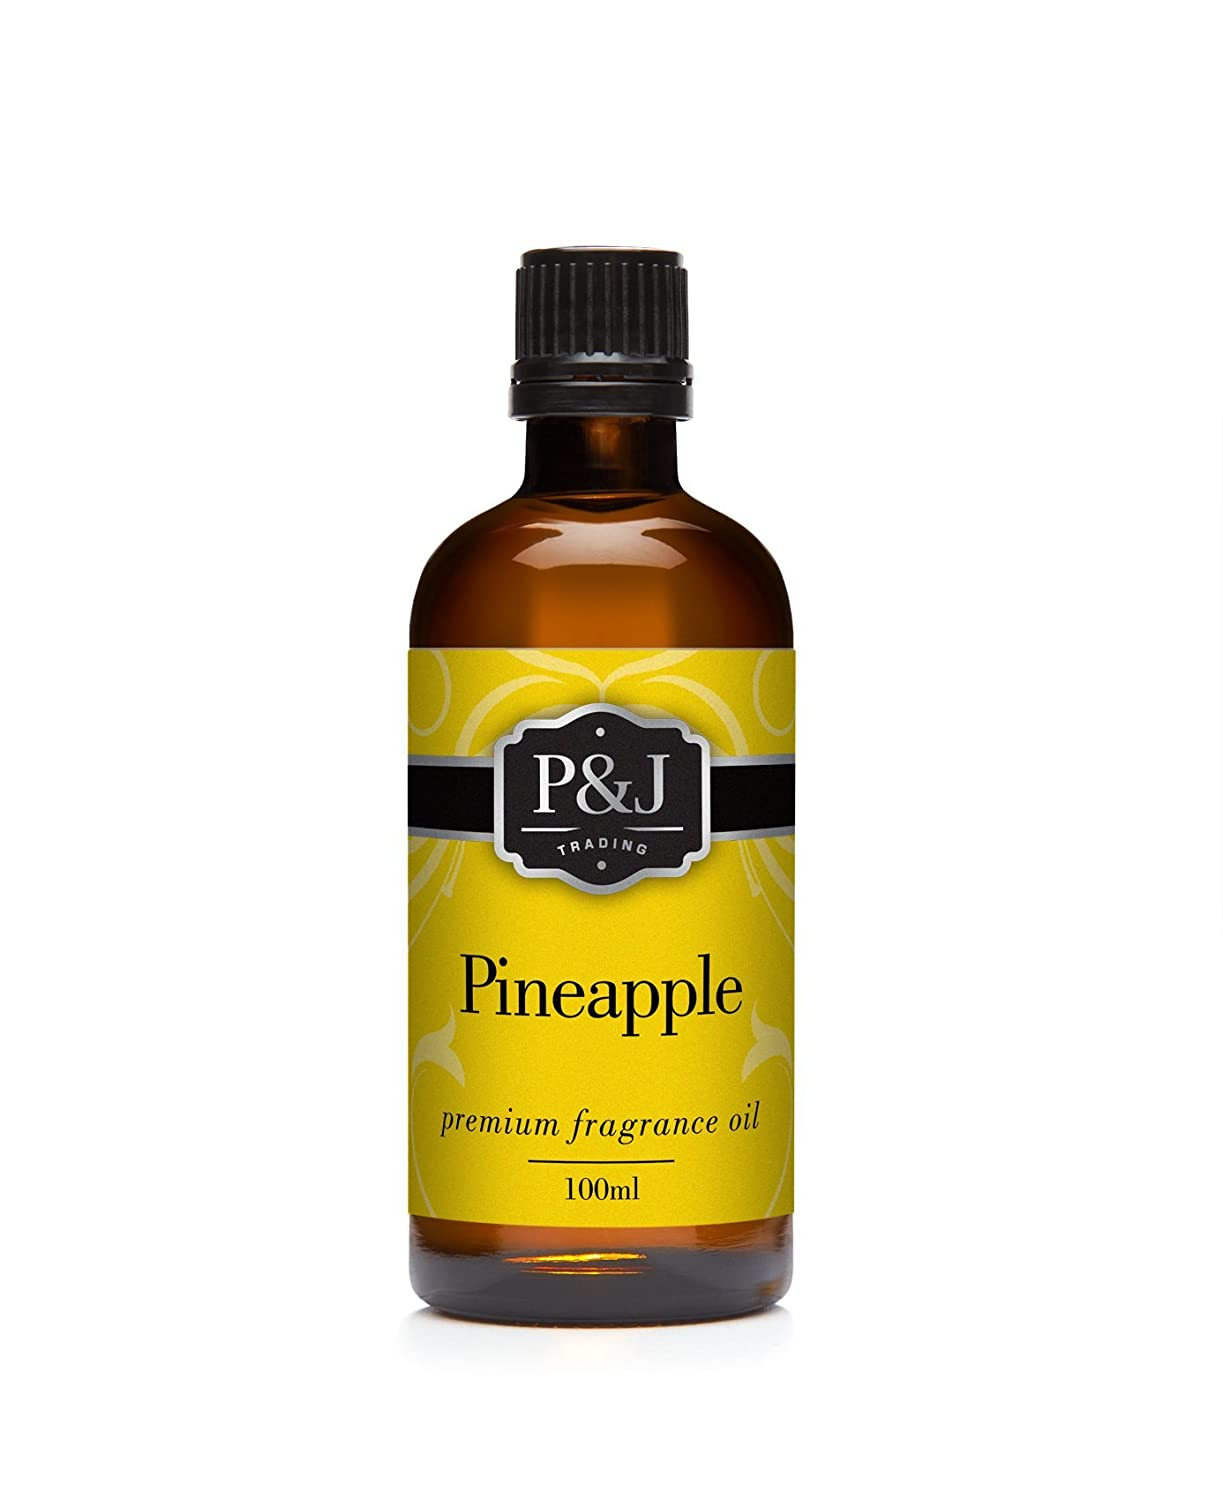 Pineapple Fragrance Oil - Premium Grade Scented Oil - 100ml/3.3oz